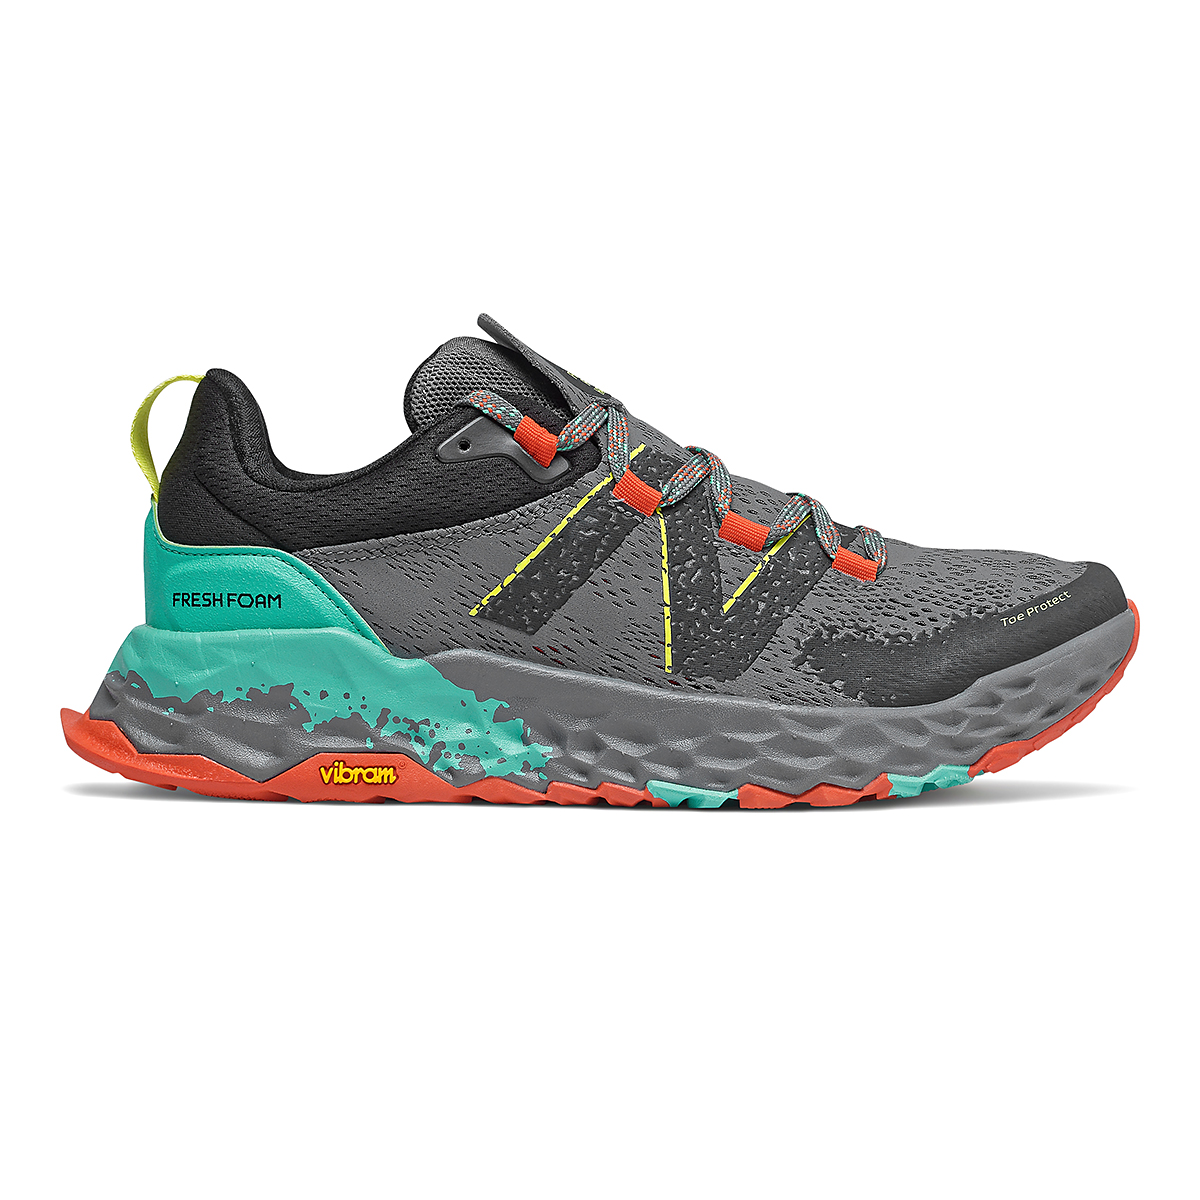 Men's New Balance Hierro V5 Trail Running Shoe - Color: Lead - Size: 4.5 - Width: Wide, Lead, large, image 1